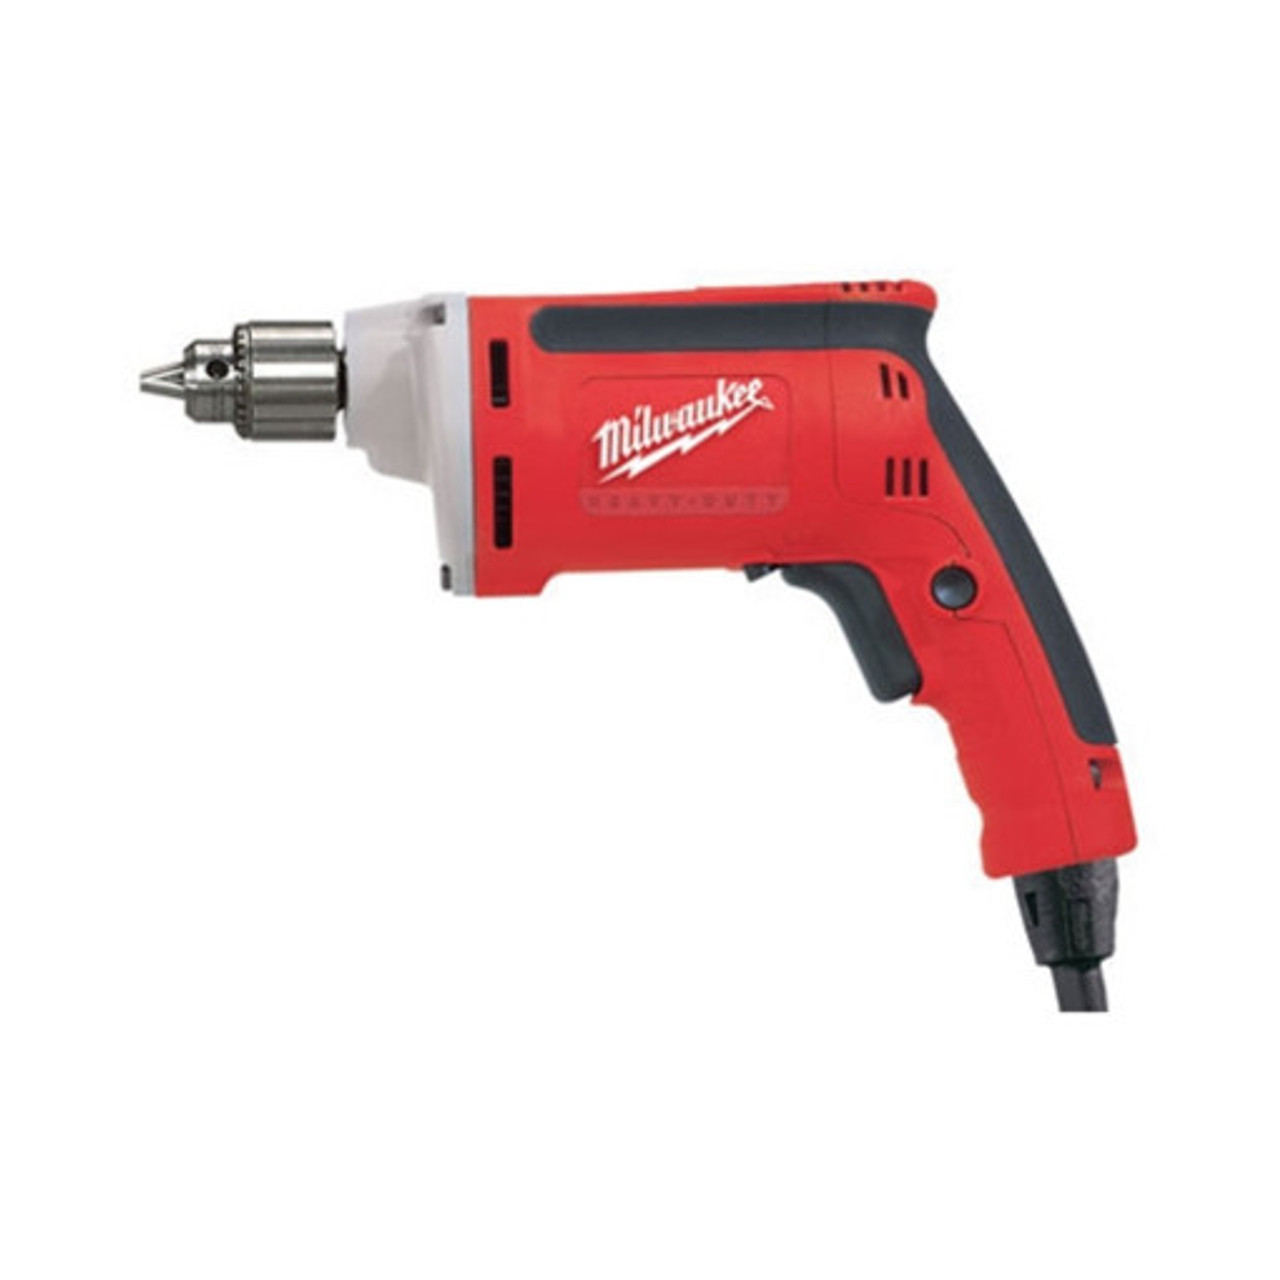 Milwaukee 0101-20 1/4 in. Magnum Drill, 0-4000 RPM with QUIK-LOK Cord